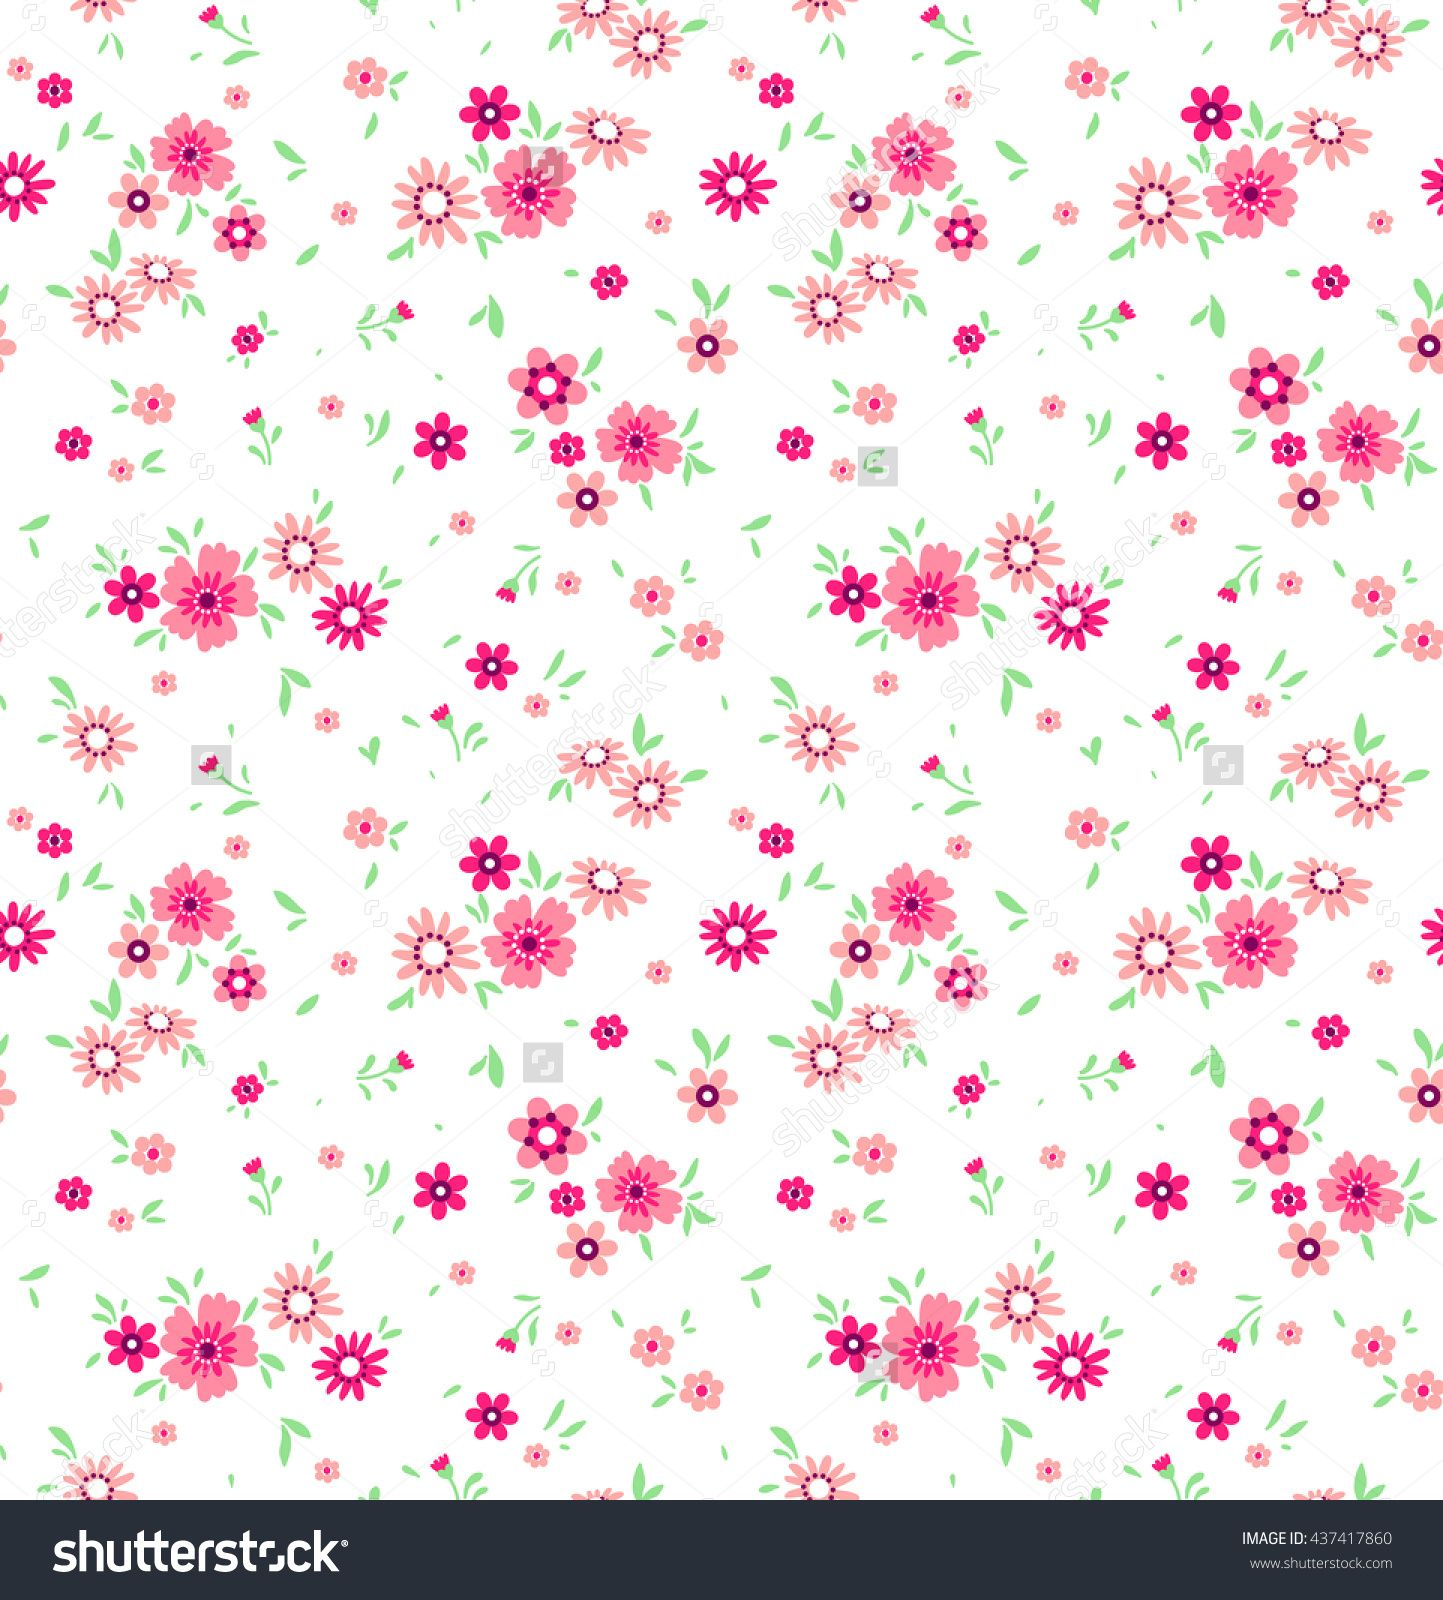 Cute Pattern In Small Flower Small Pink Flowers White Background